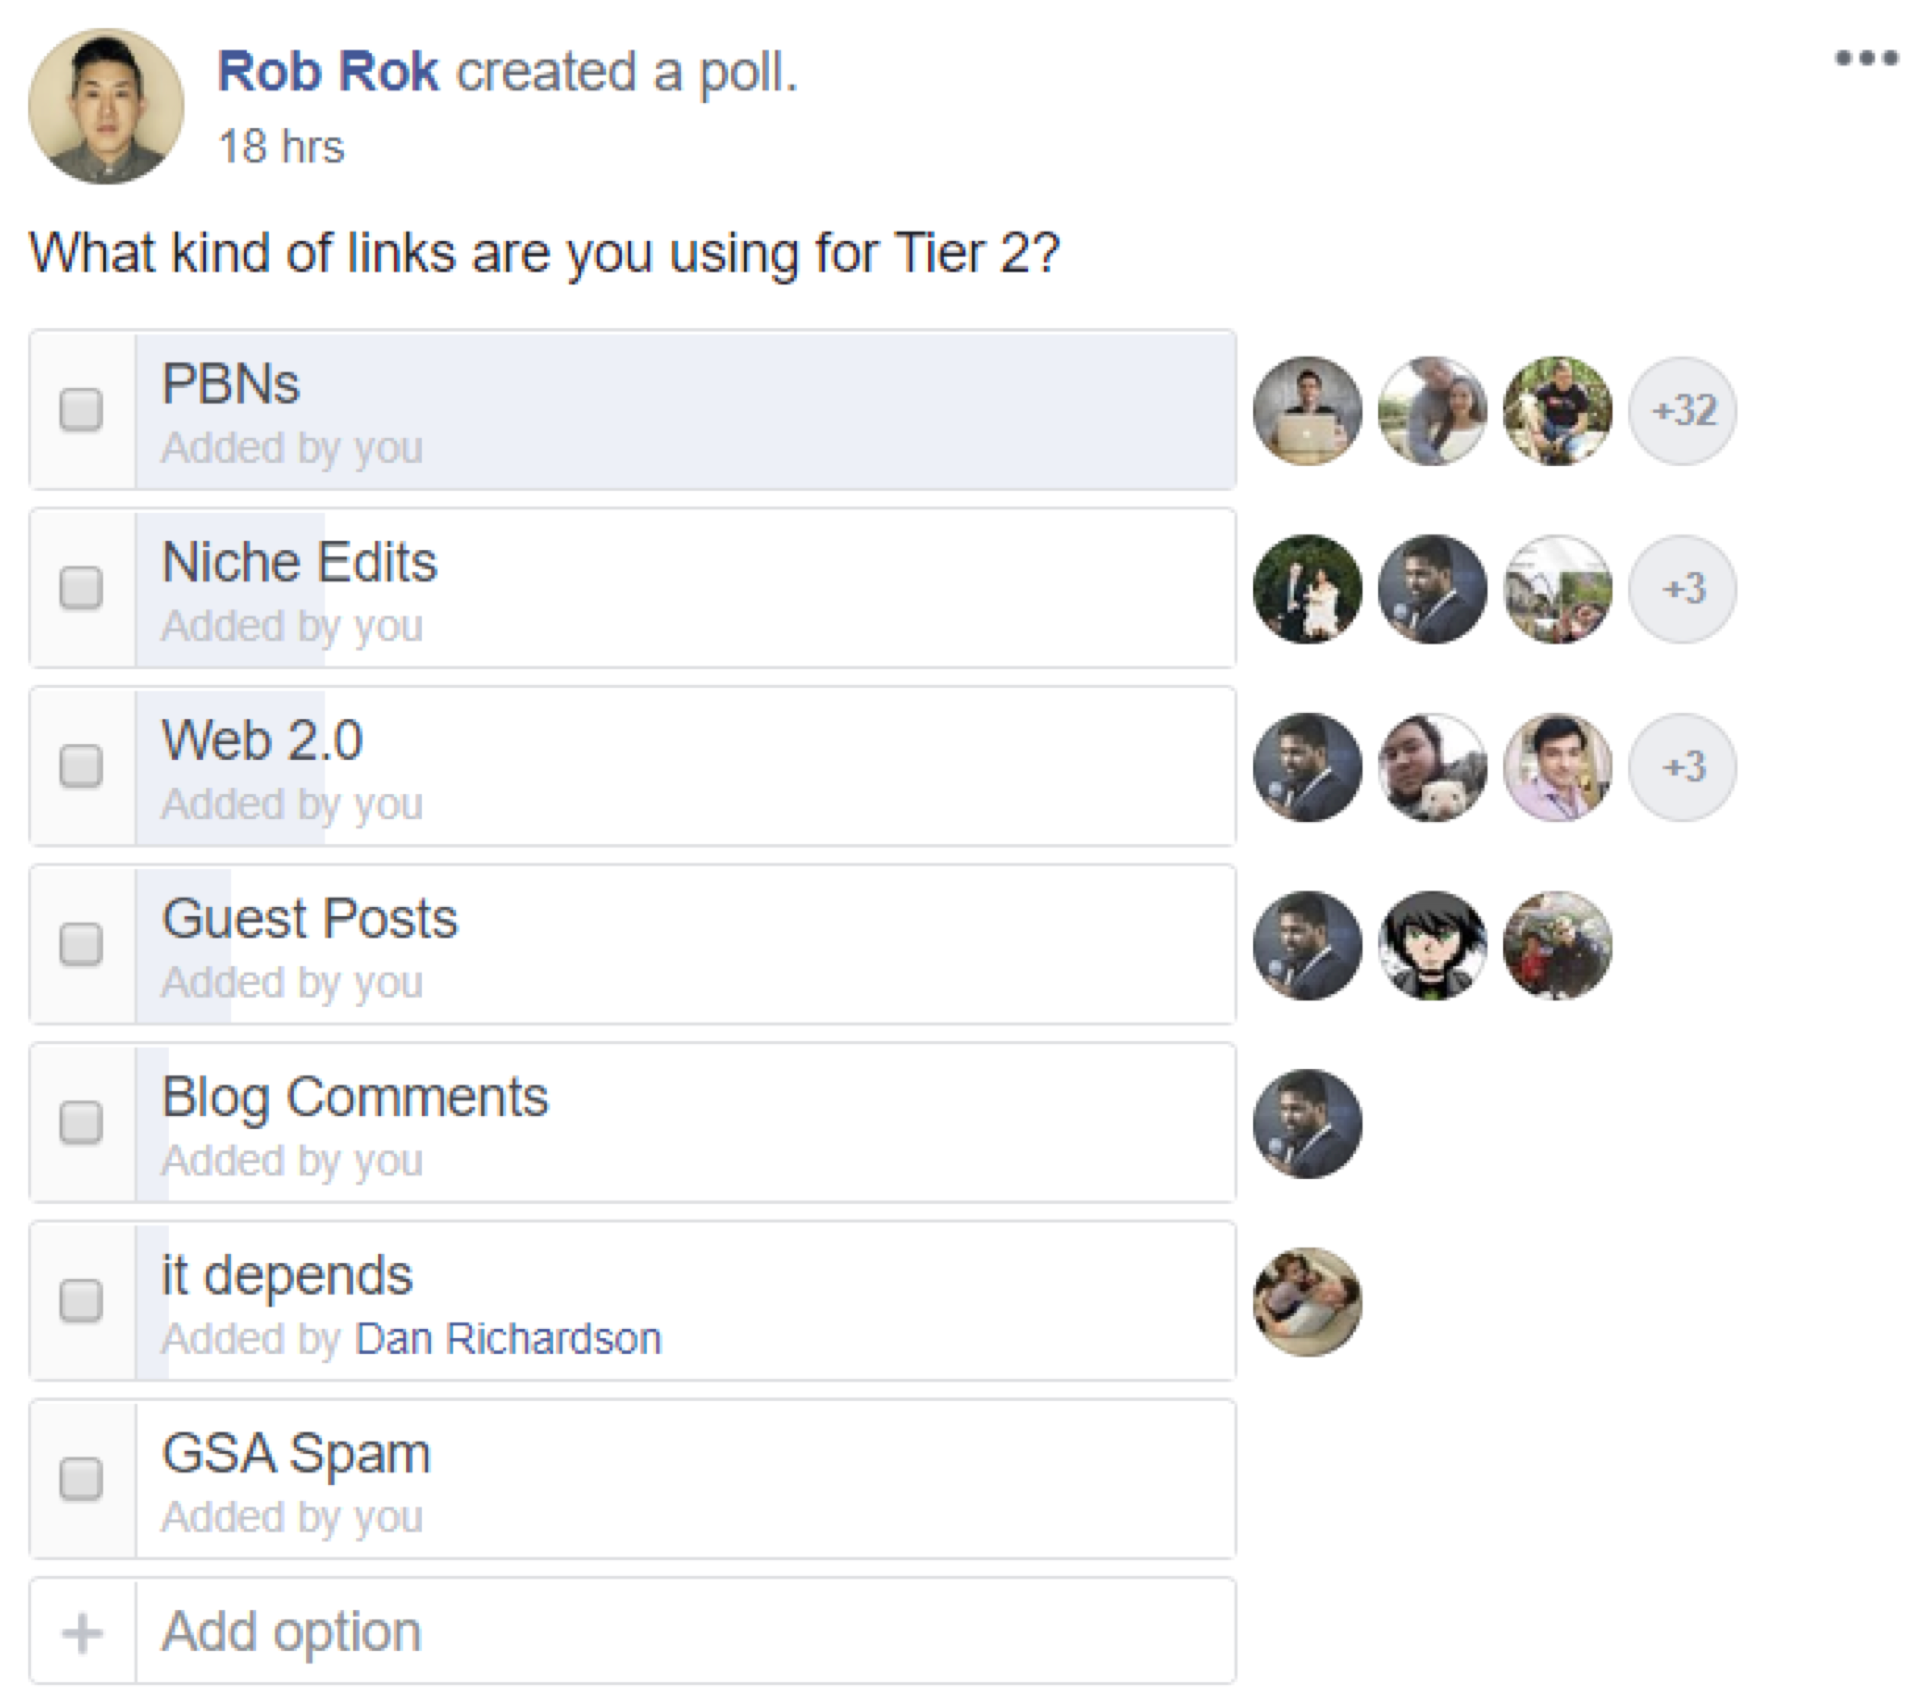 Tier2 Facebook Poll